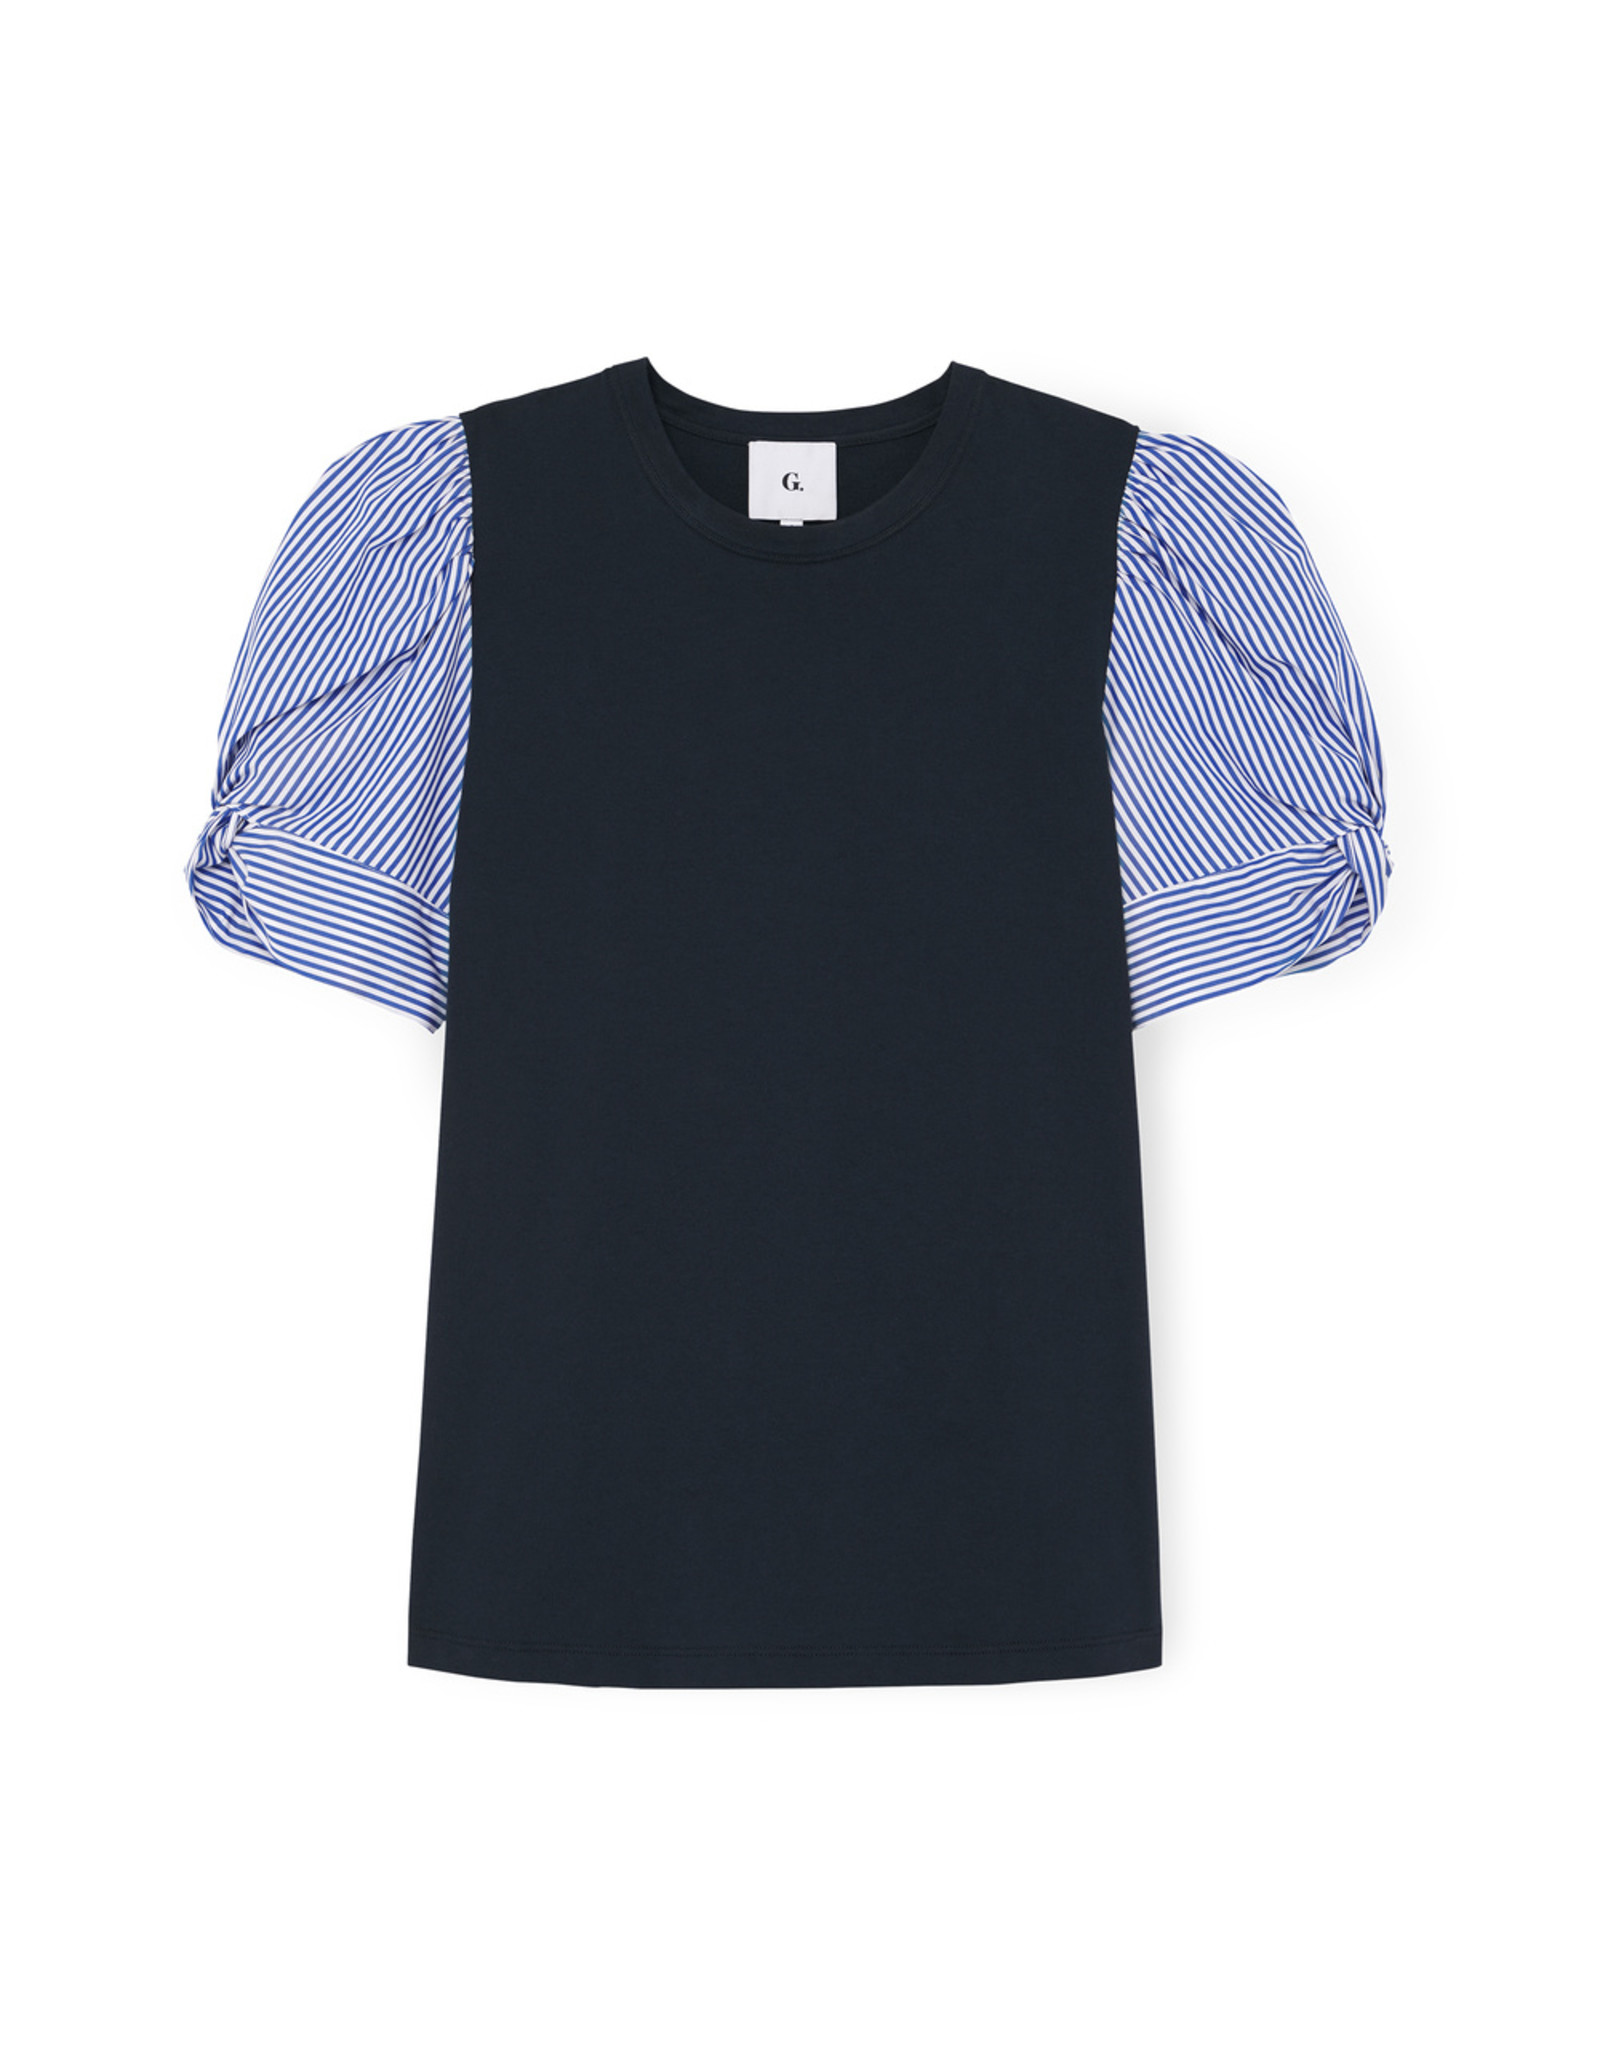 G. Label G. Label Justine Puff Sleeve T-Shirt (Size: 4, Color: Navy/Stripe)